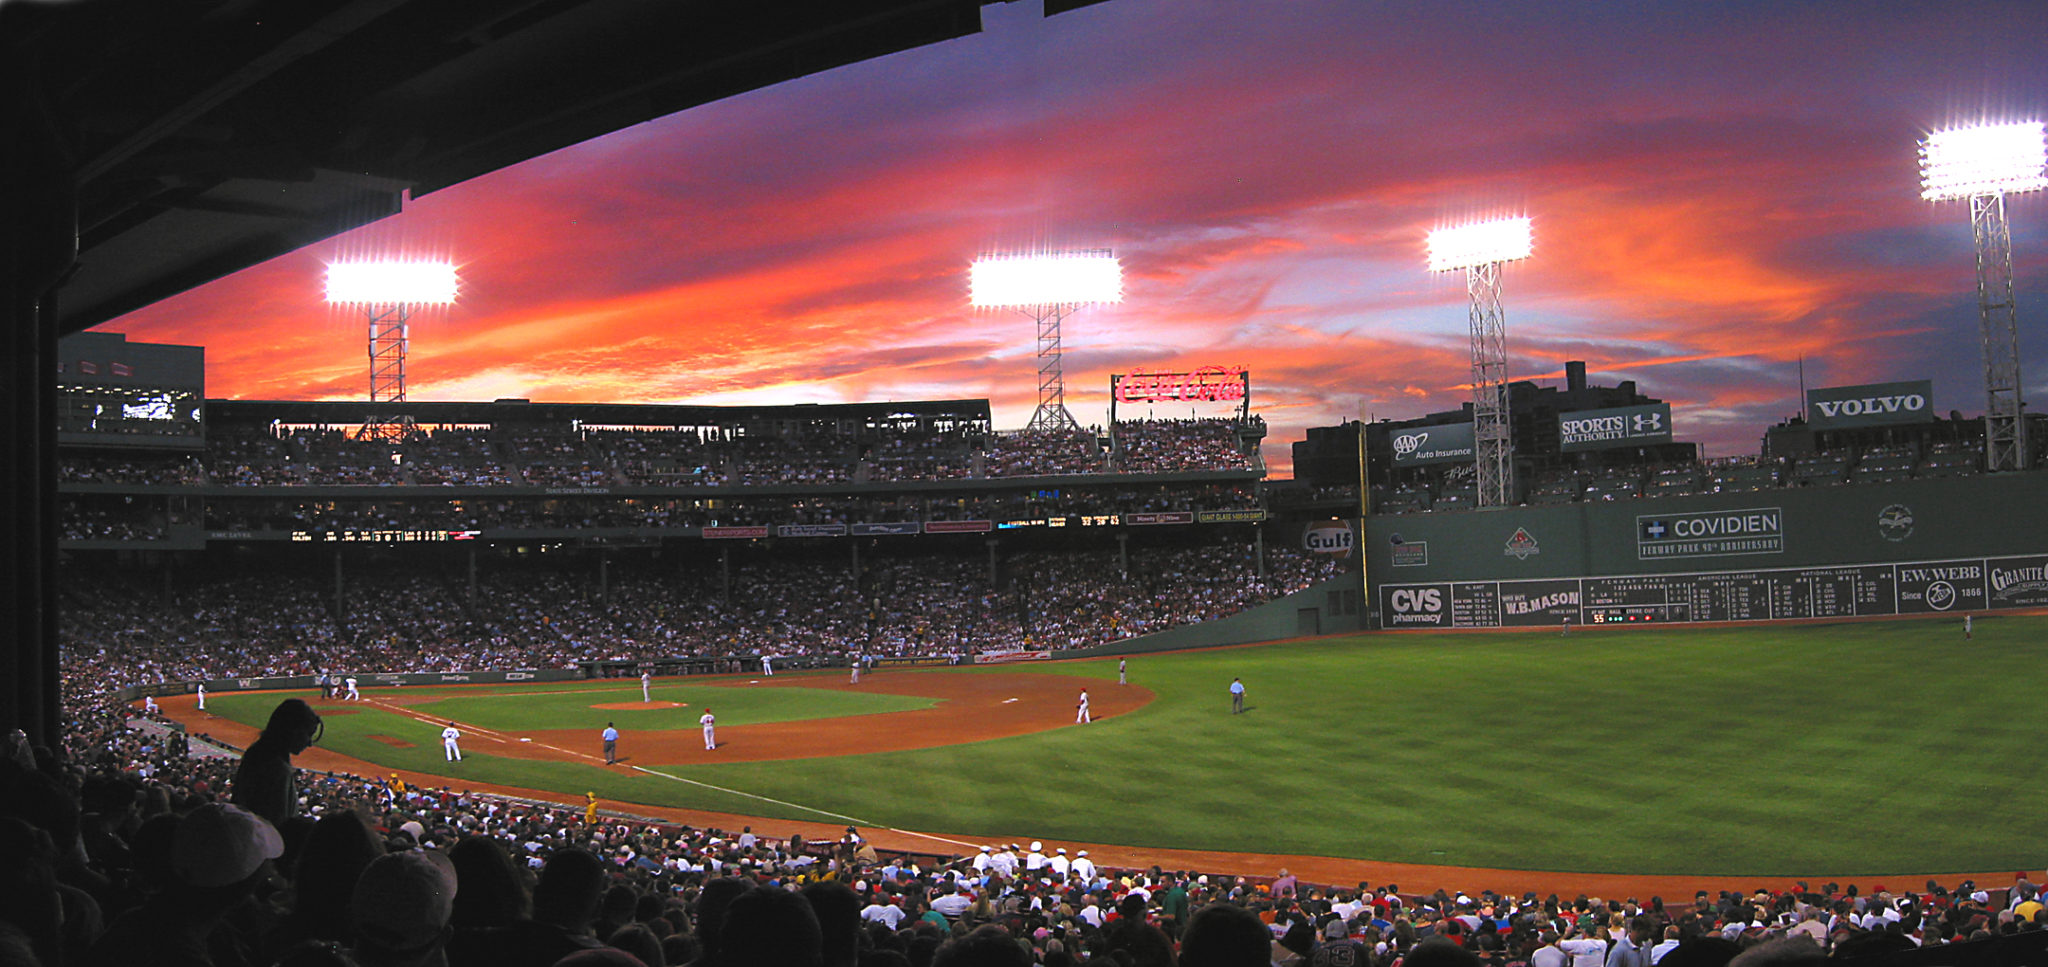 Fenway Park - baseball at night